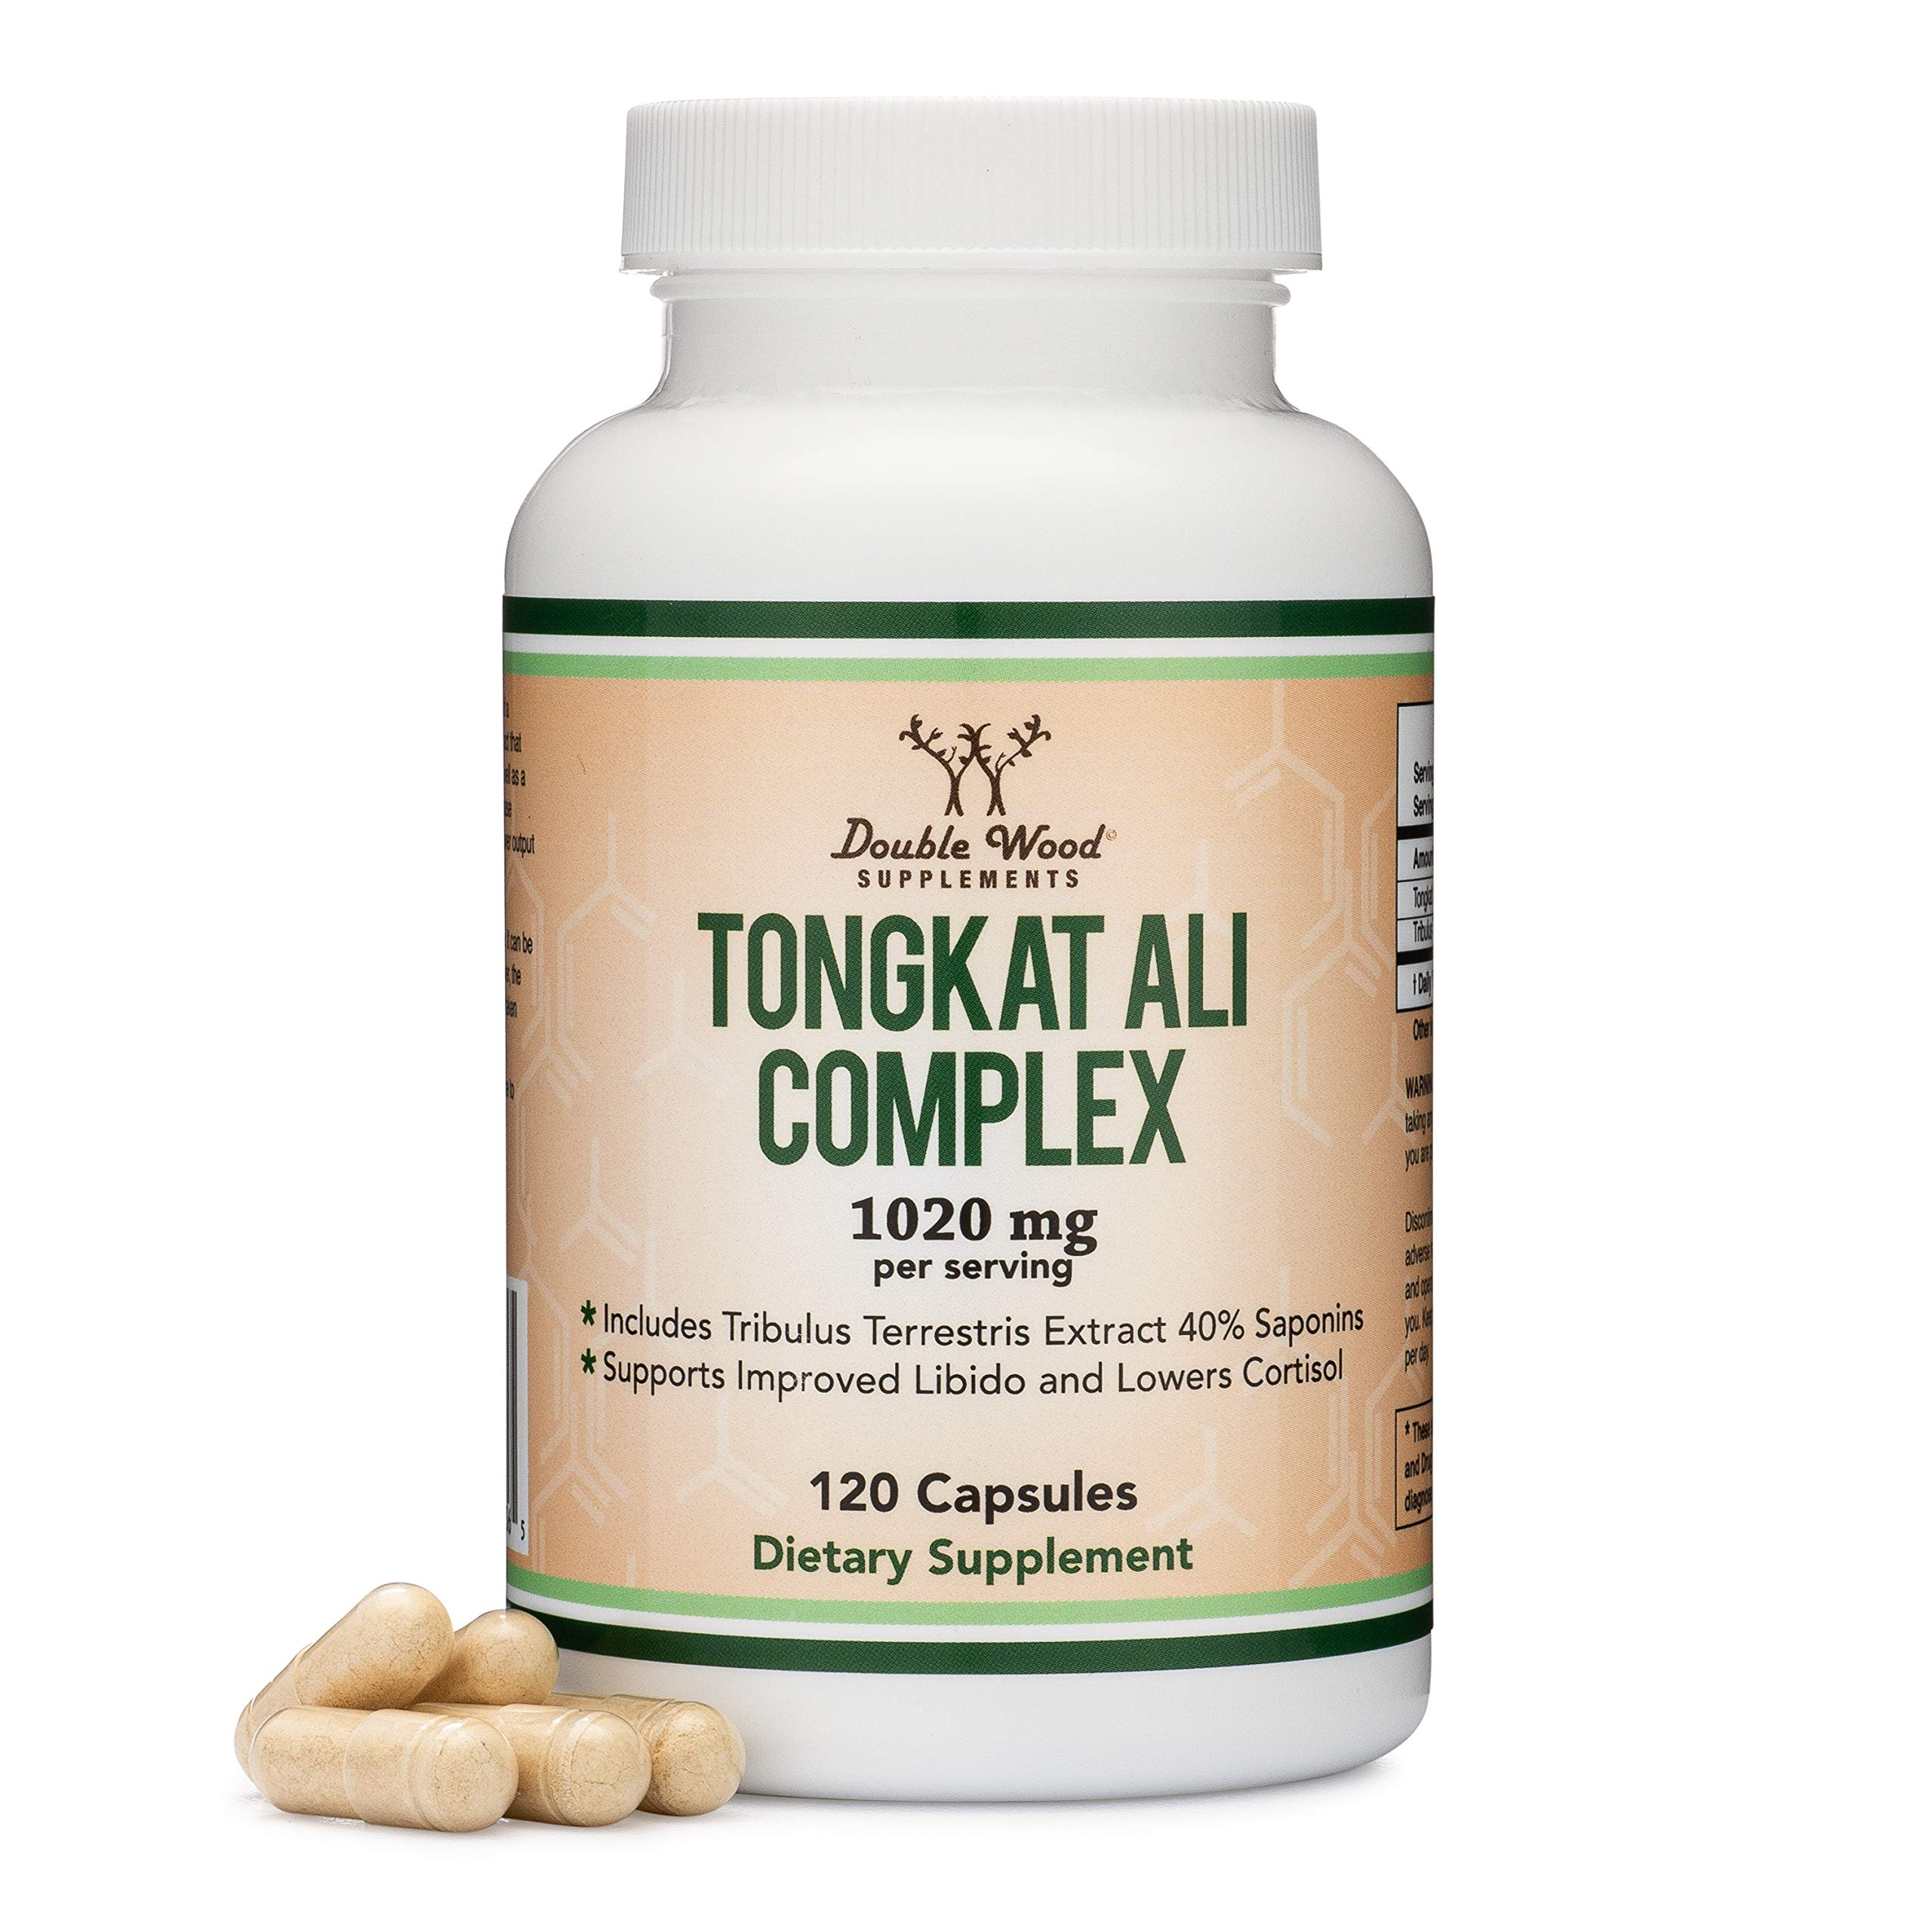 Tongkat Ali Extract 200 to 1 (Longjack) Eurycoma Longifolia, 1000mg per Serving, 120 Capsules - Natural Testosterone Supplement and Libido Booster, with 20mg Tribulus Terrestris by Double Wood by Double Wood Supplements